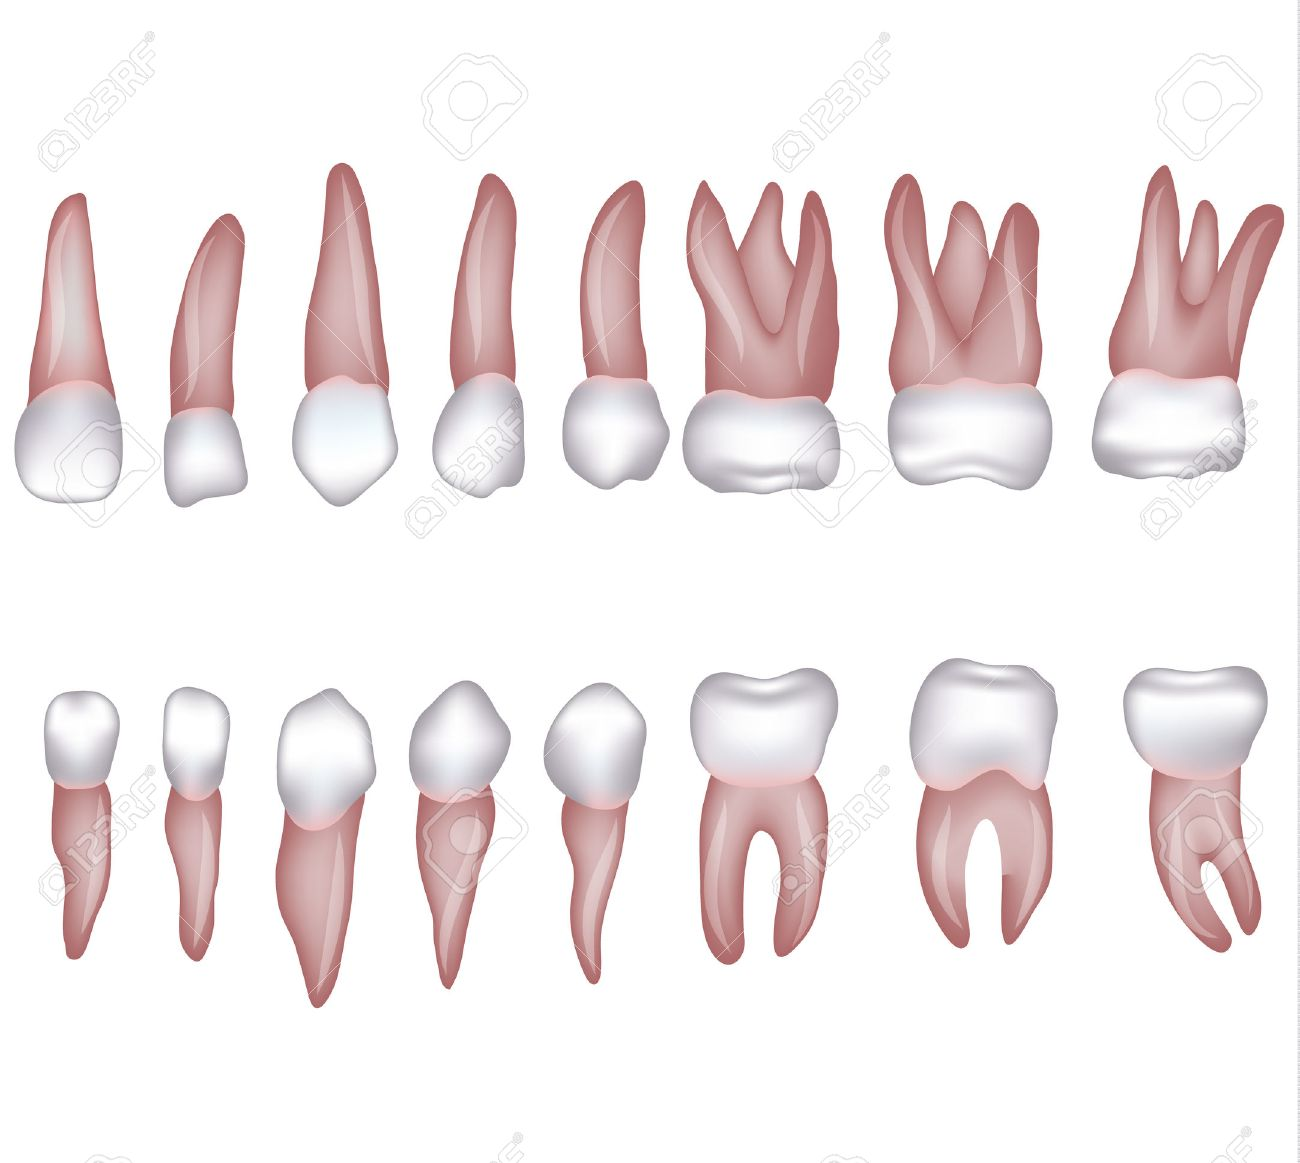 healthy human teeth illustration. isolated on white. royalty free, Human Body